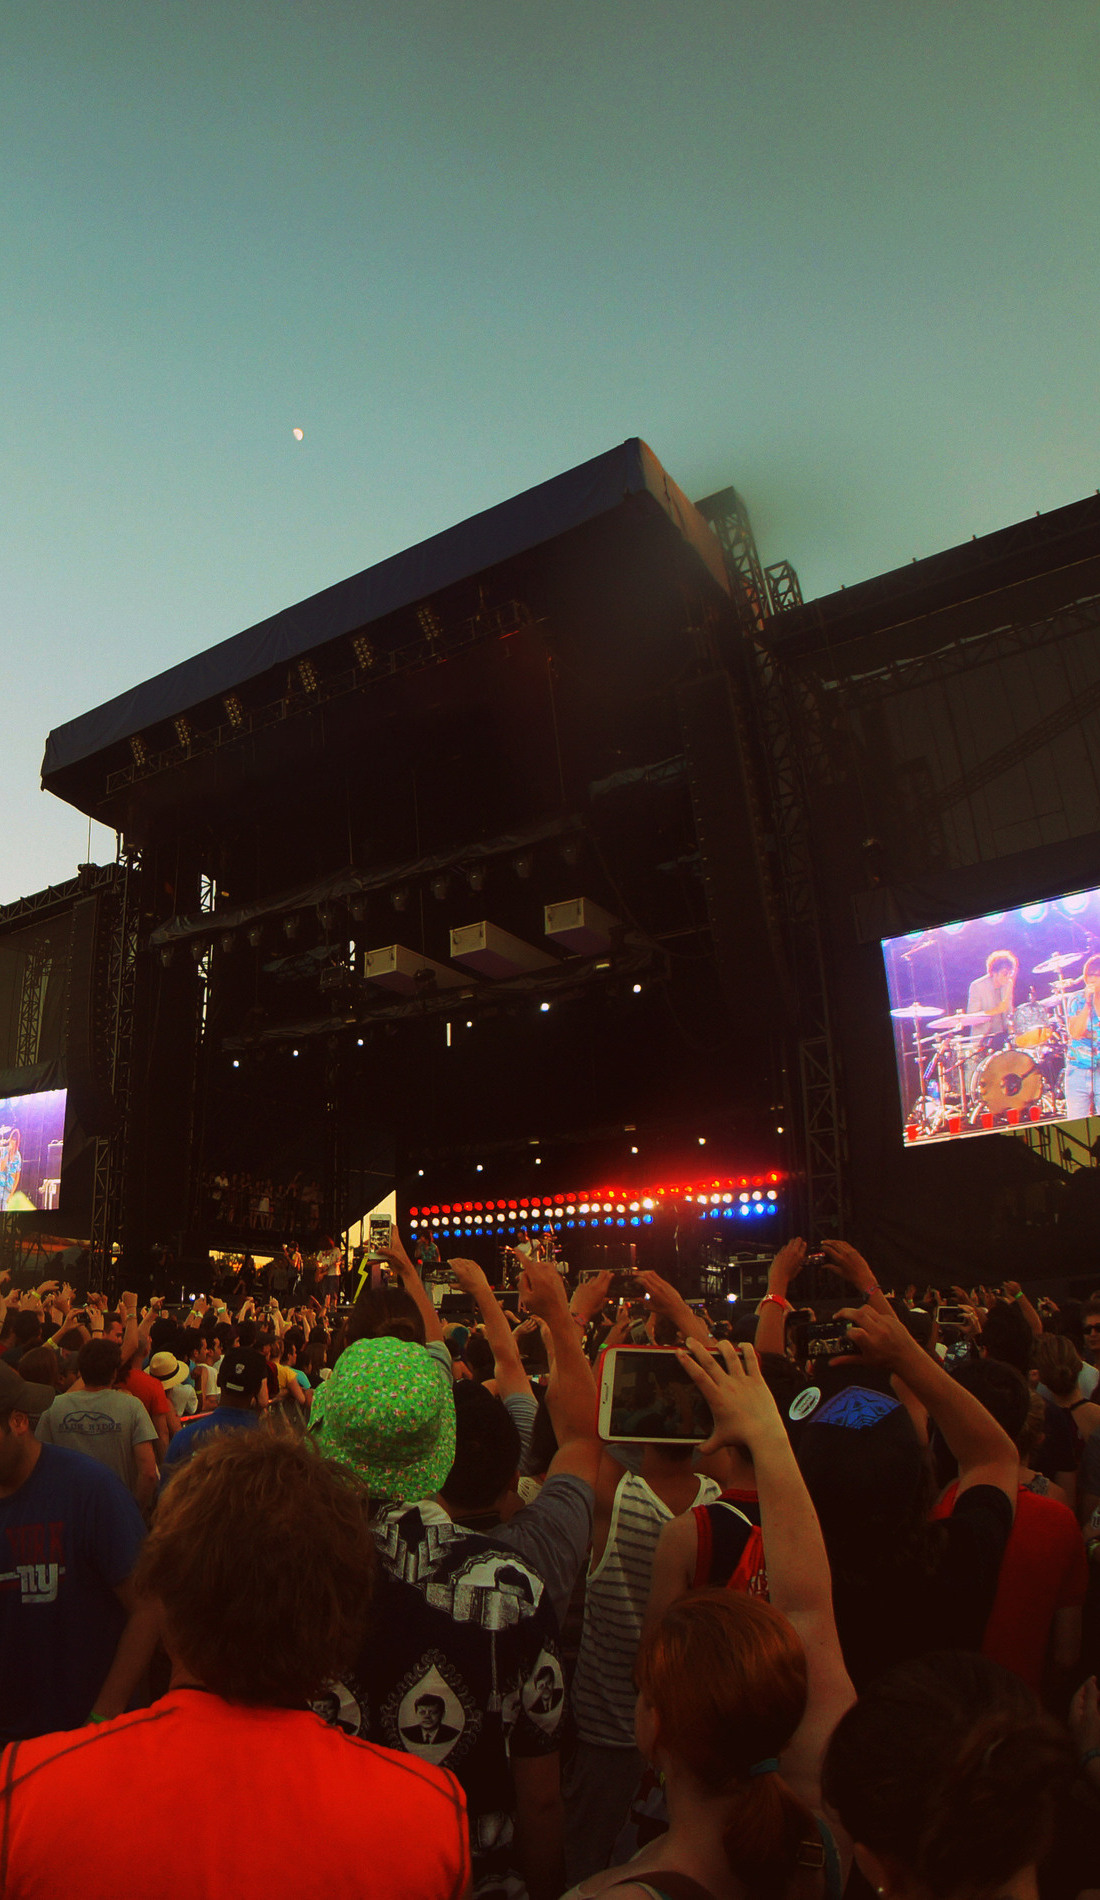 A Governors Ball Music Festival live event